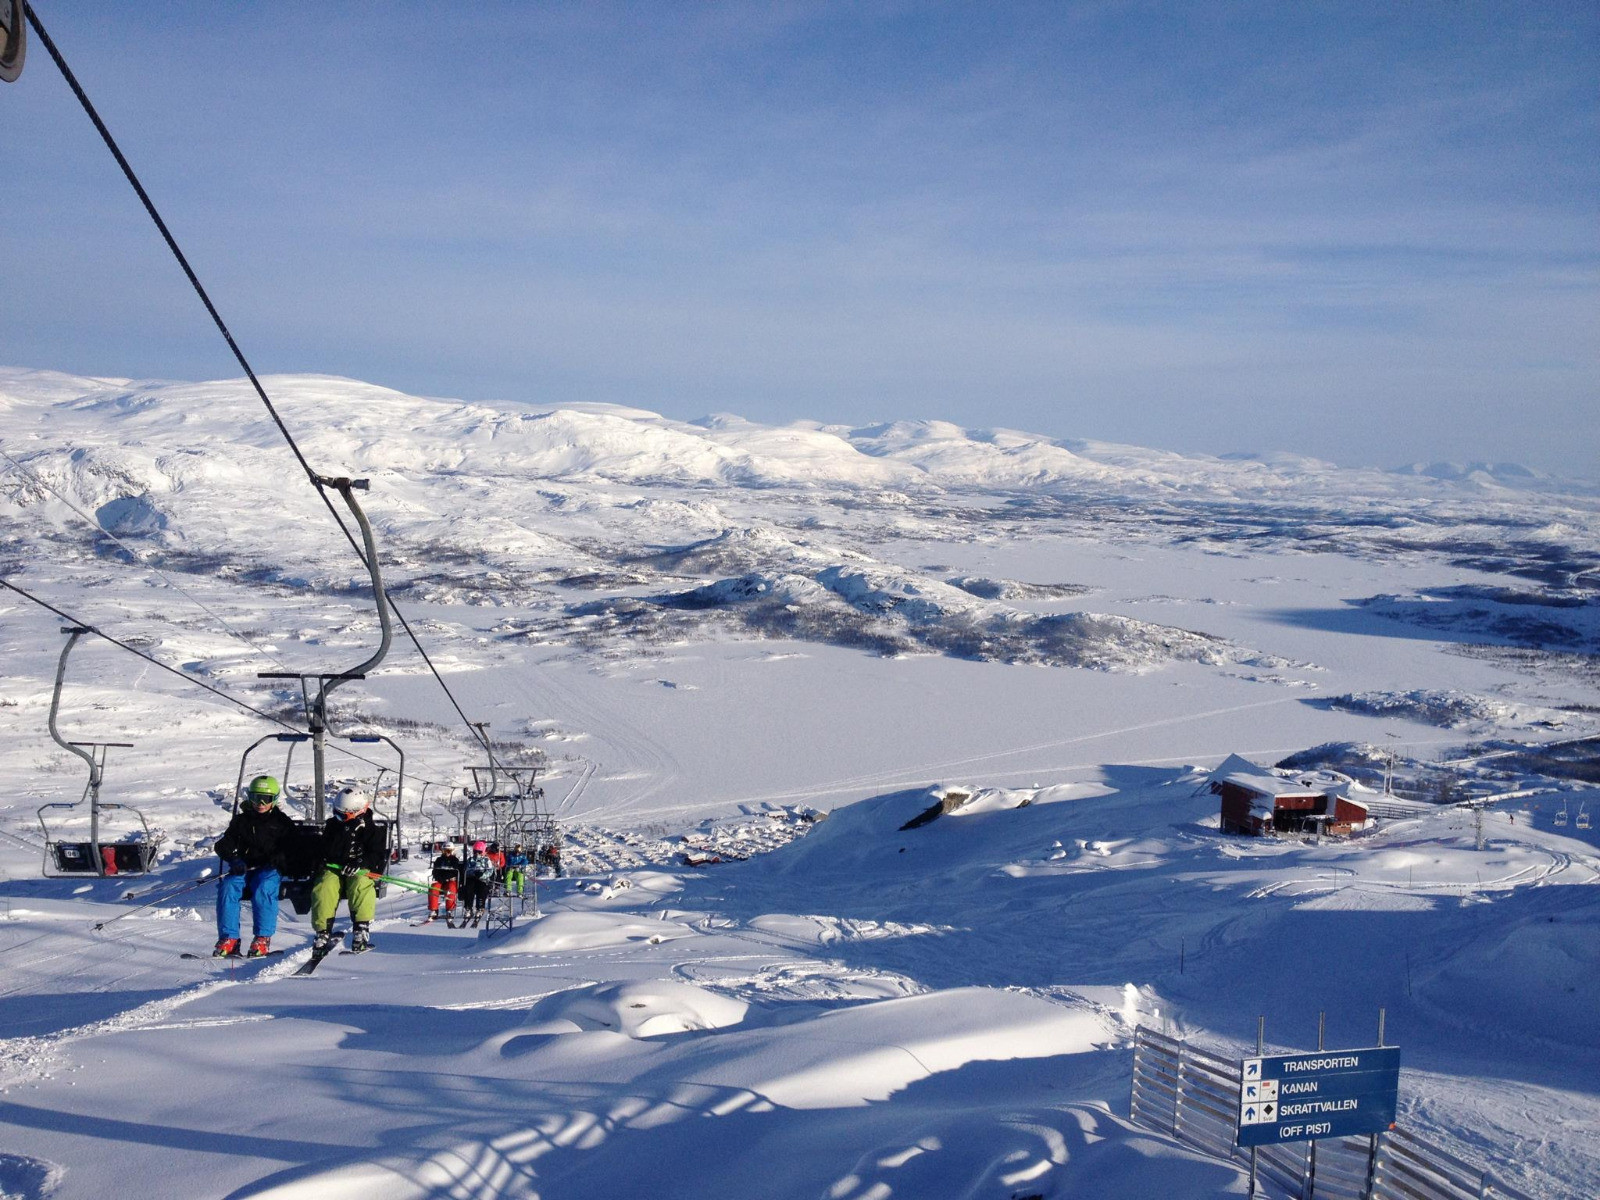 Skiing in Sweden is a good bet for UK skiers this year (picture: Riksgränsen, Sweden)undefined